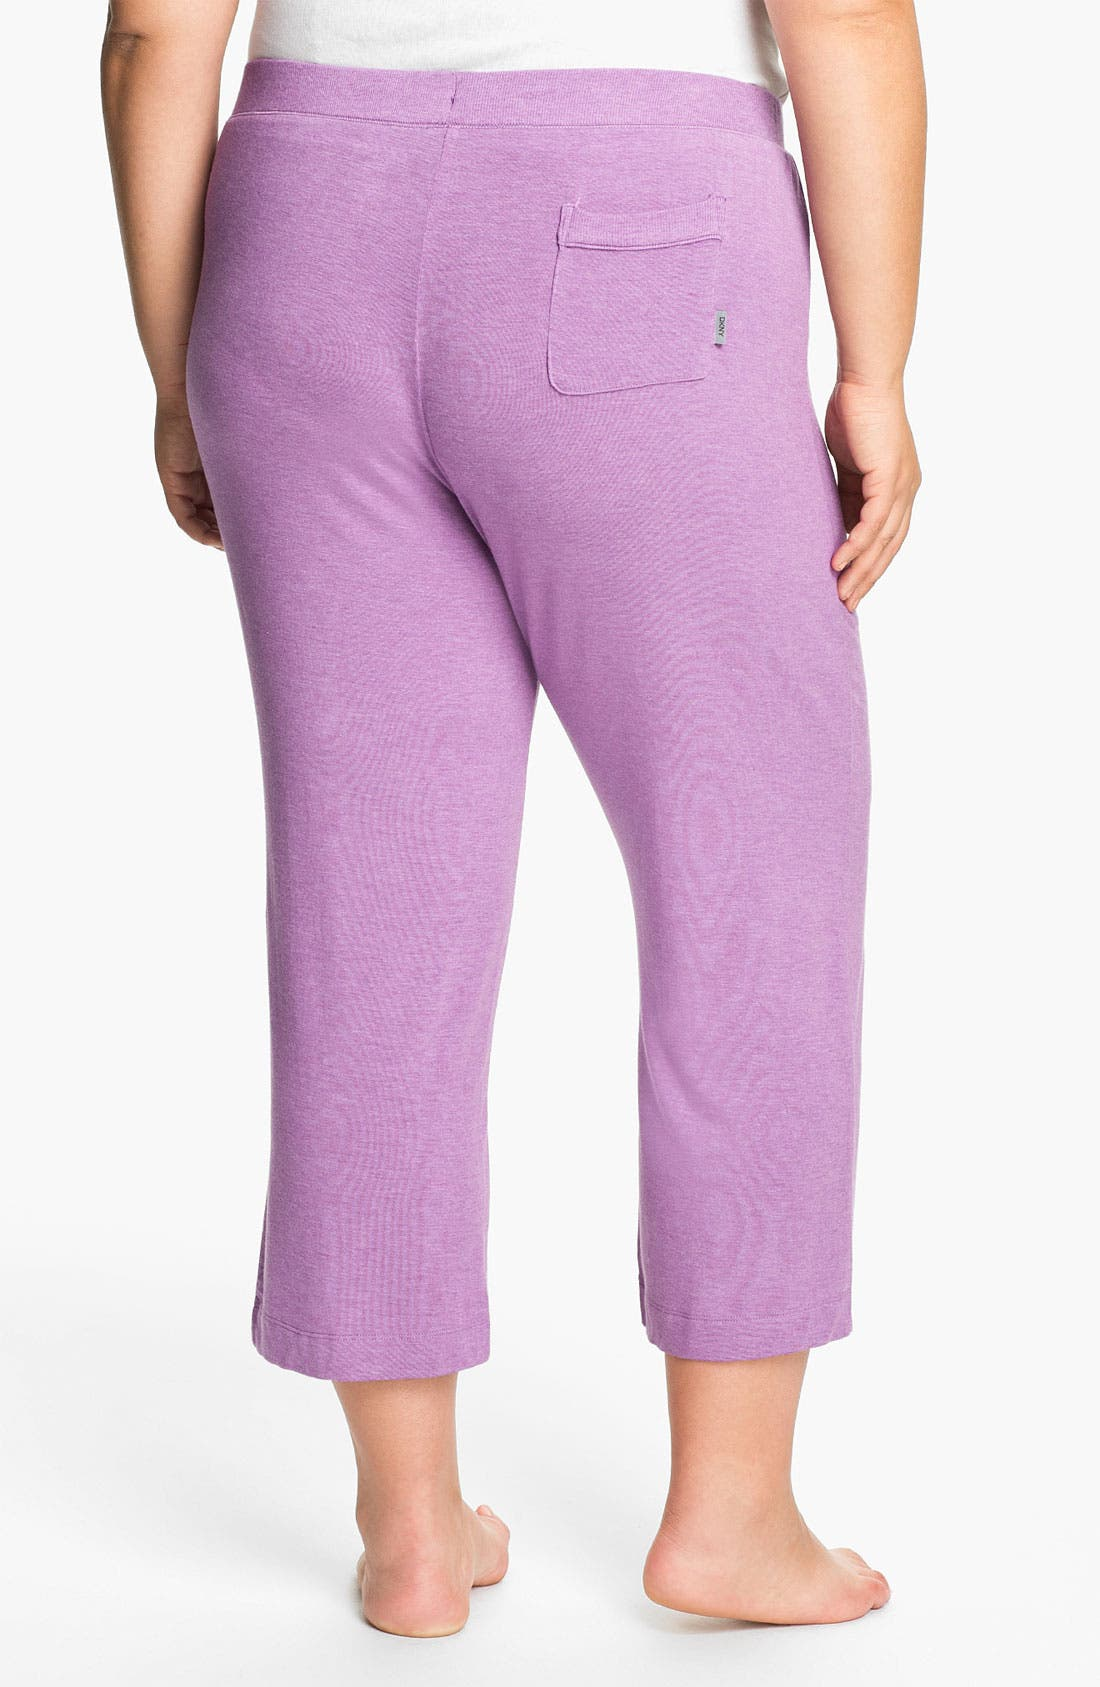 Alternate Image 2  - DKNY '7 Easy Pieces' Capri Pants (Plus Size)